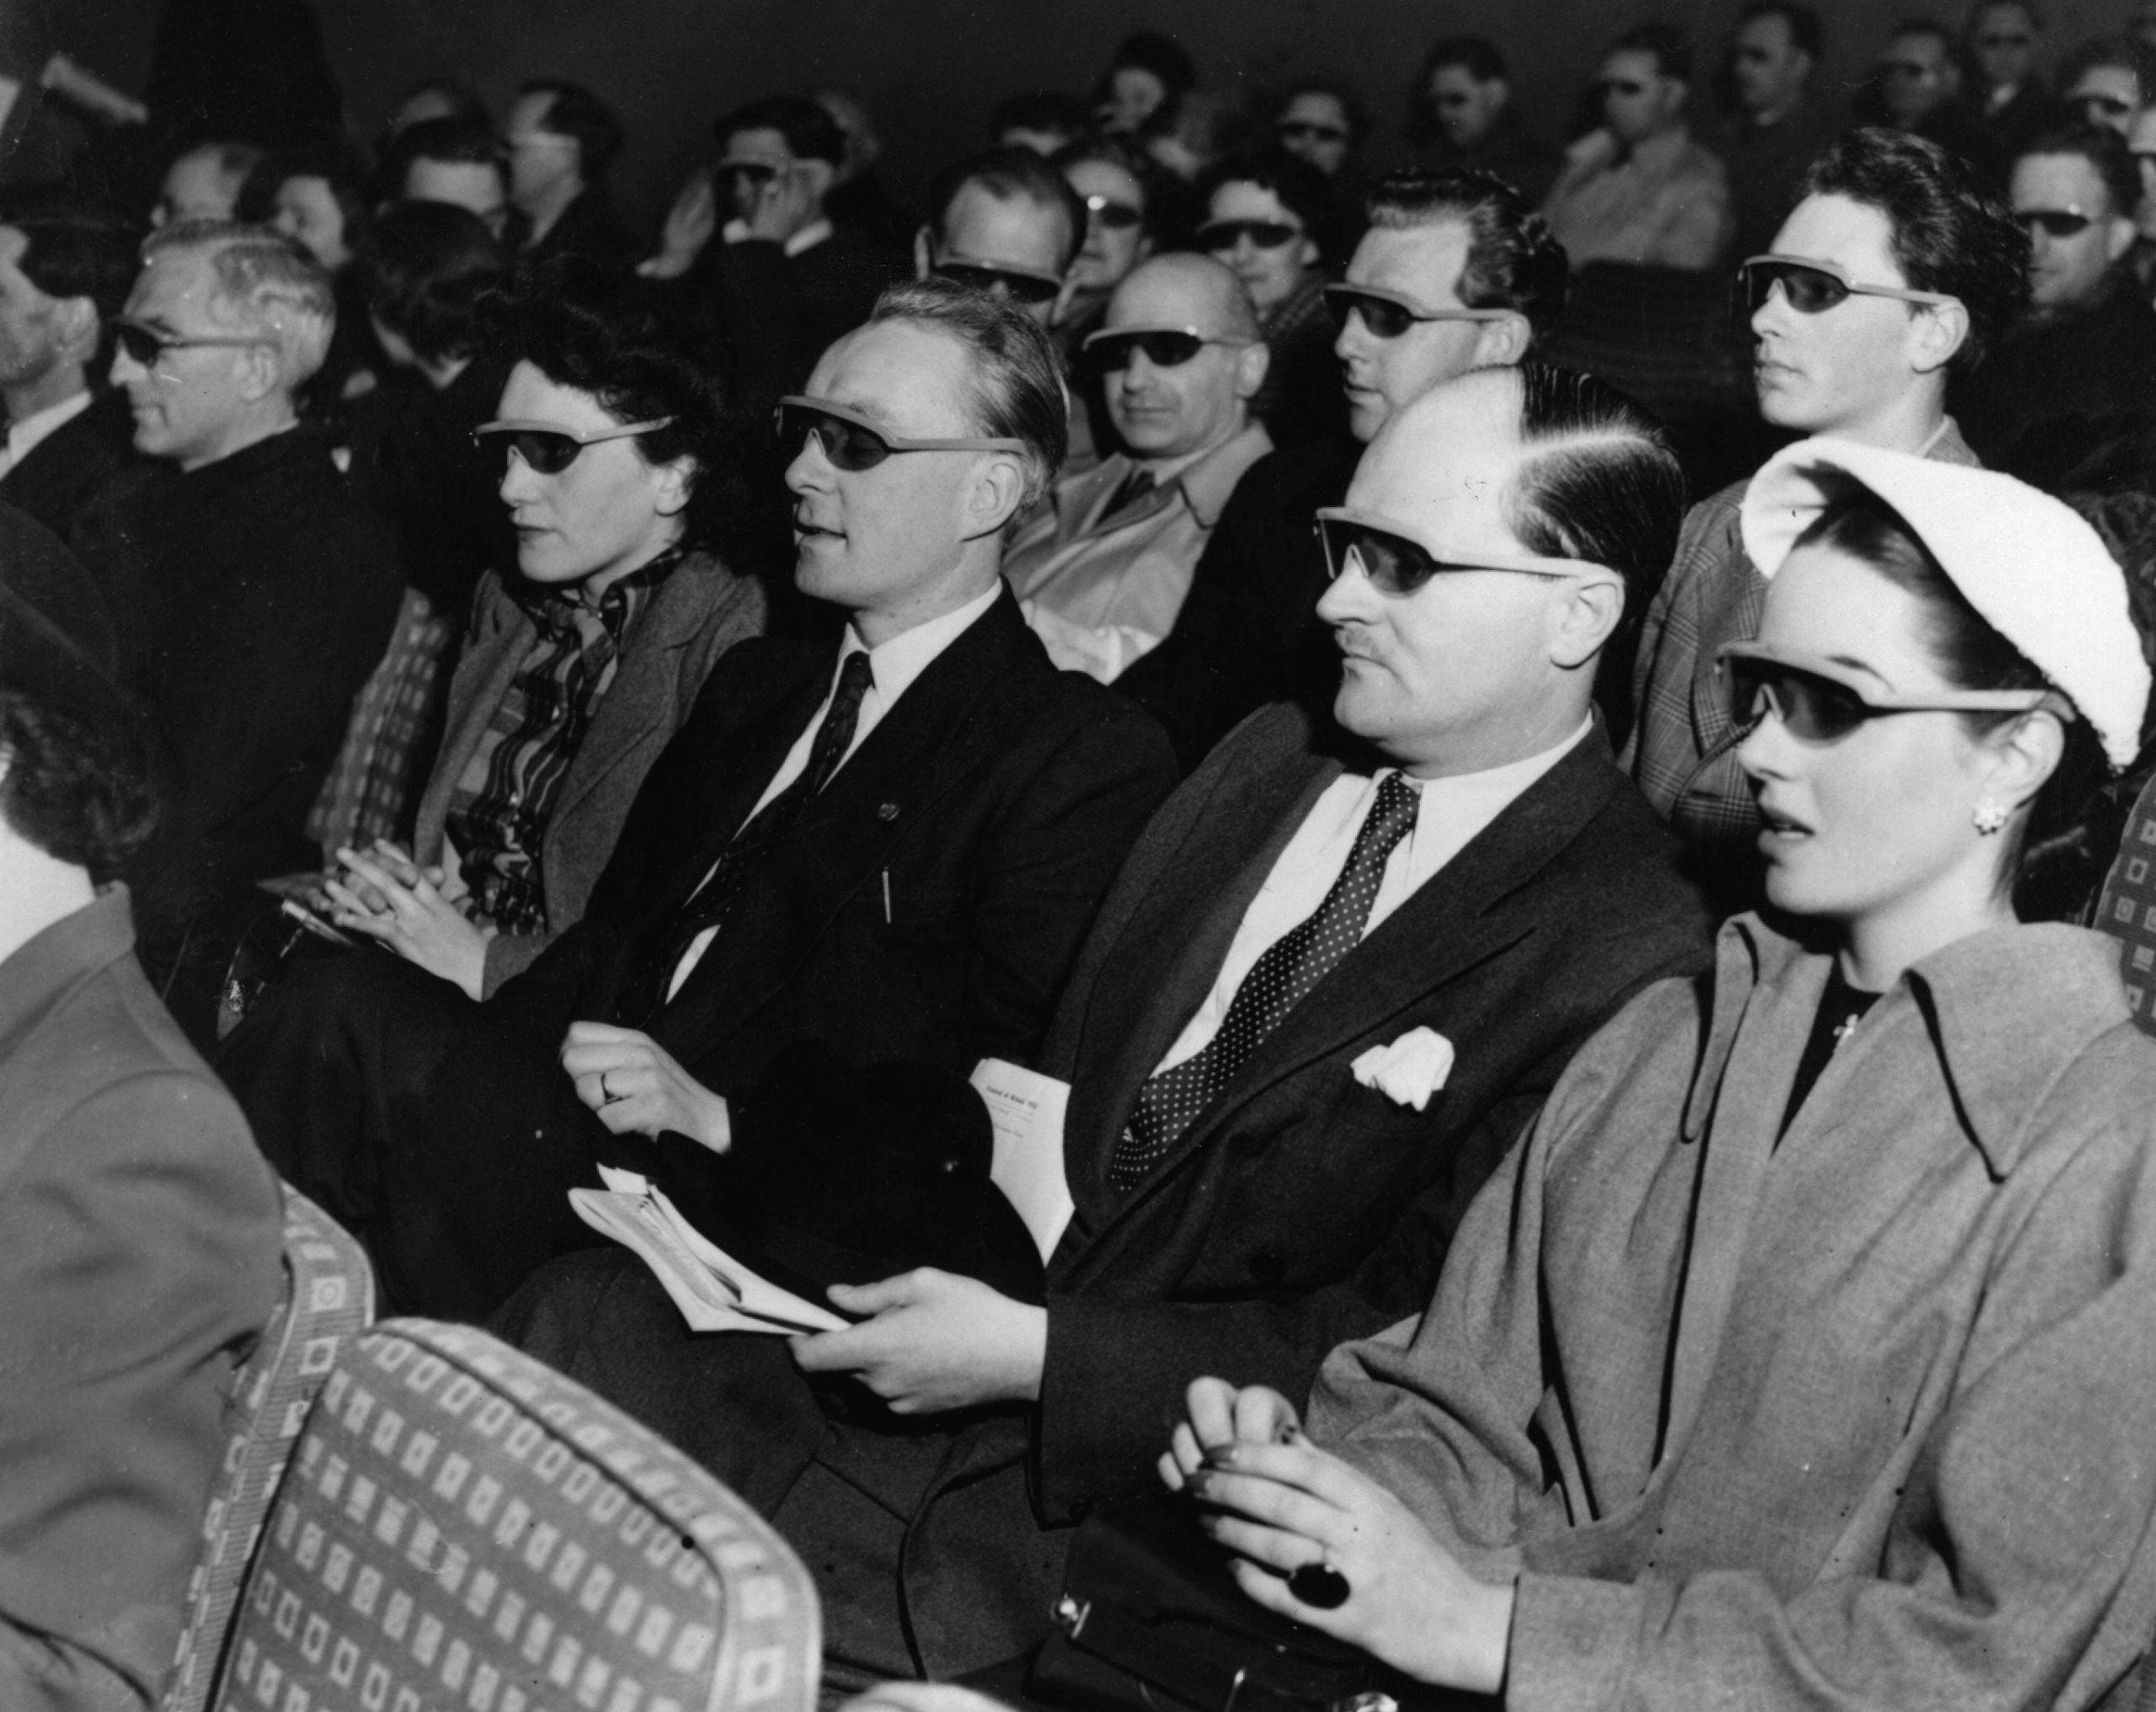 3D cinema without the glasses: a potential new technology could change how we watch films